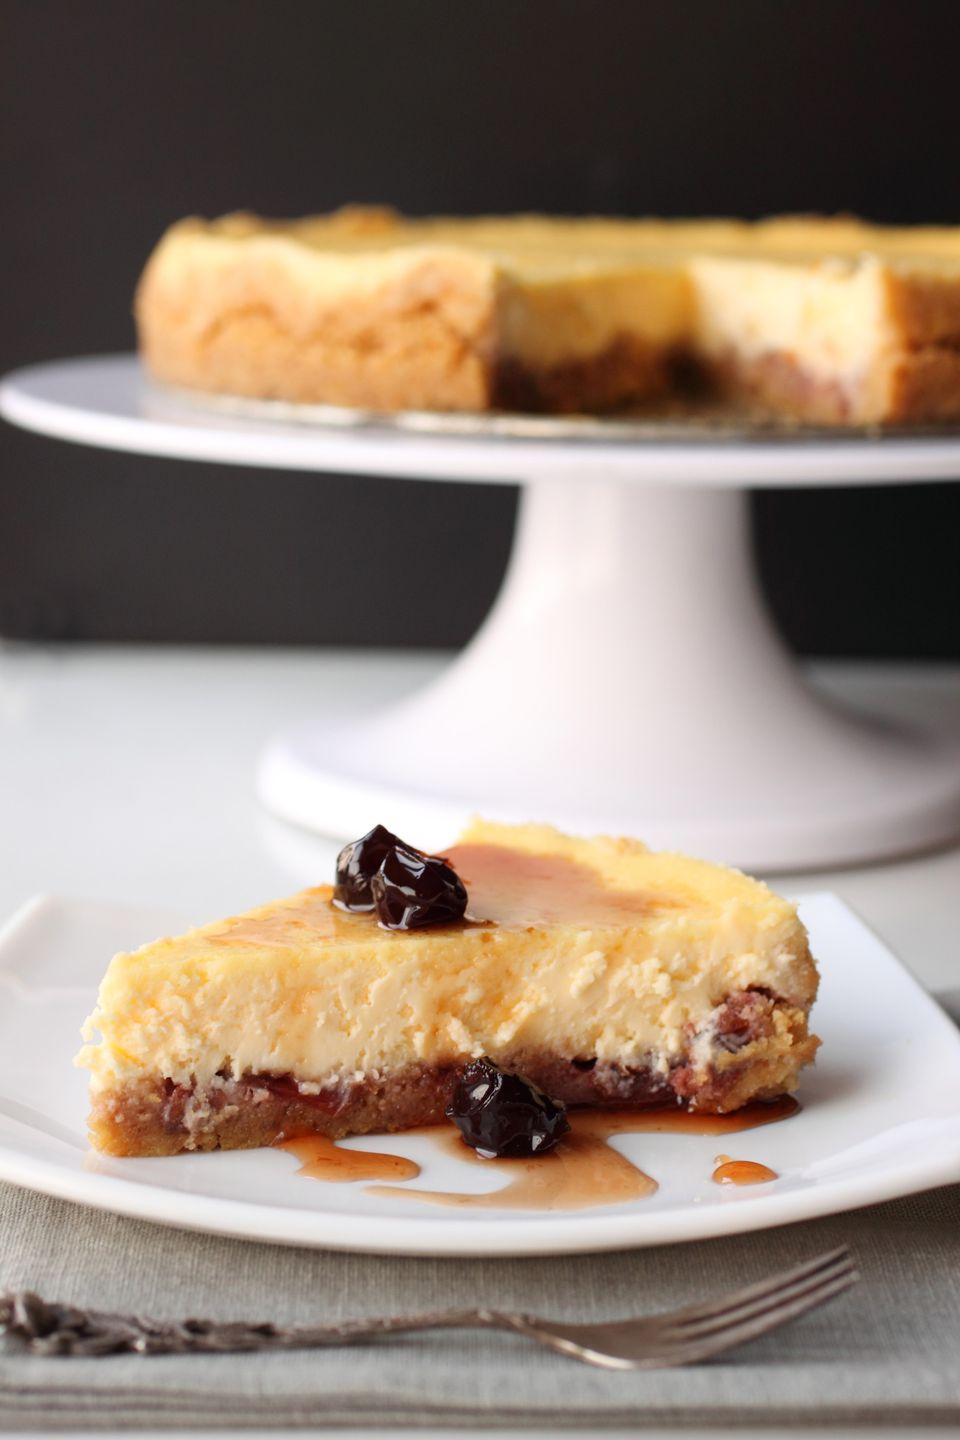 Cheesecake for Passover